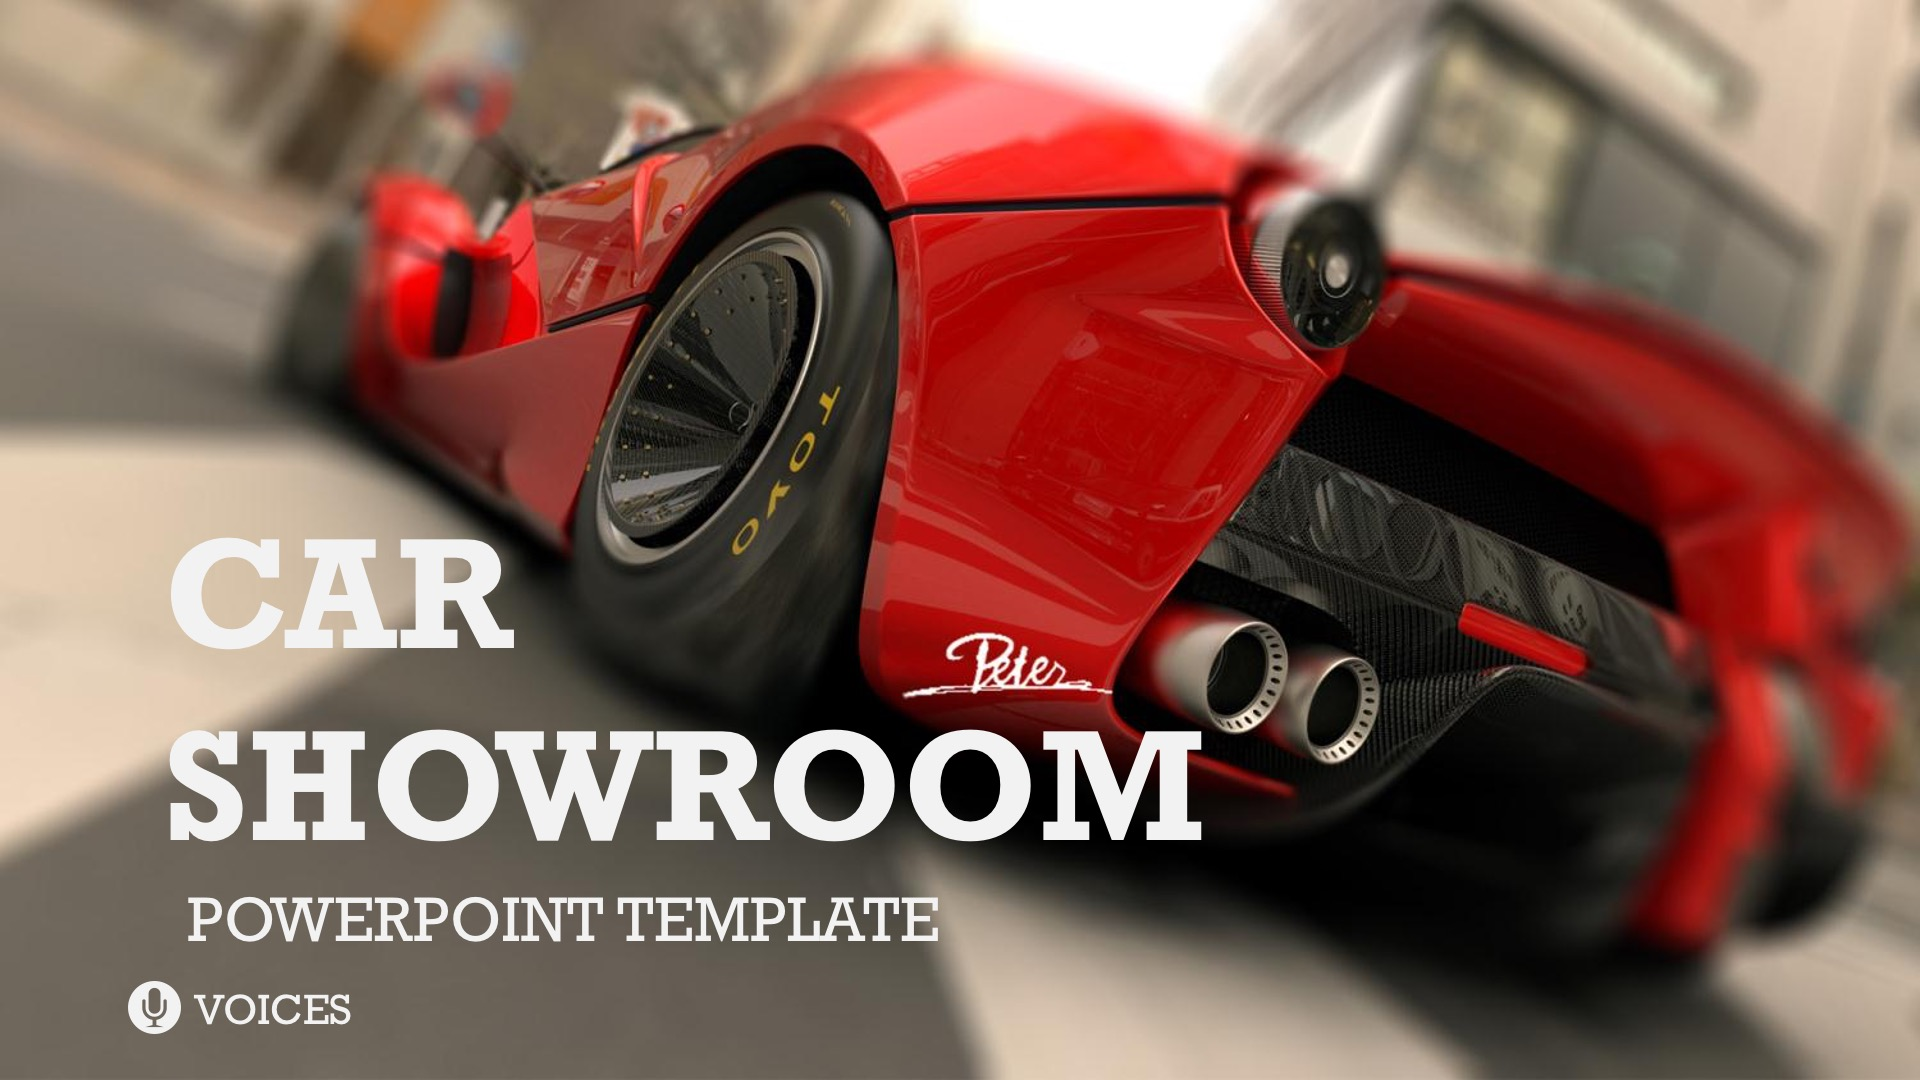 Car Showroom Powerpoint Template